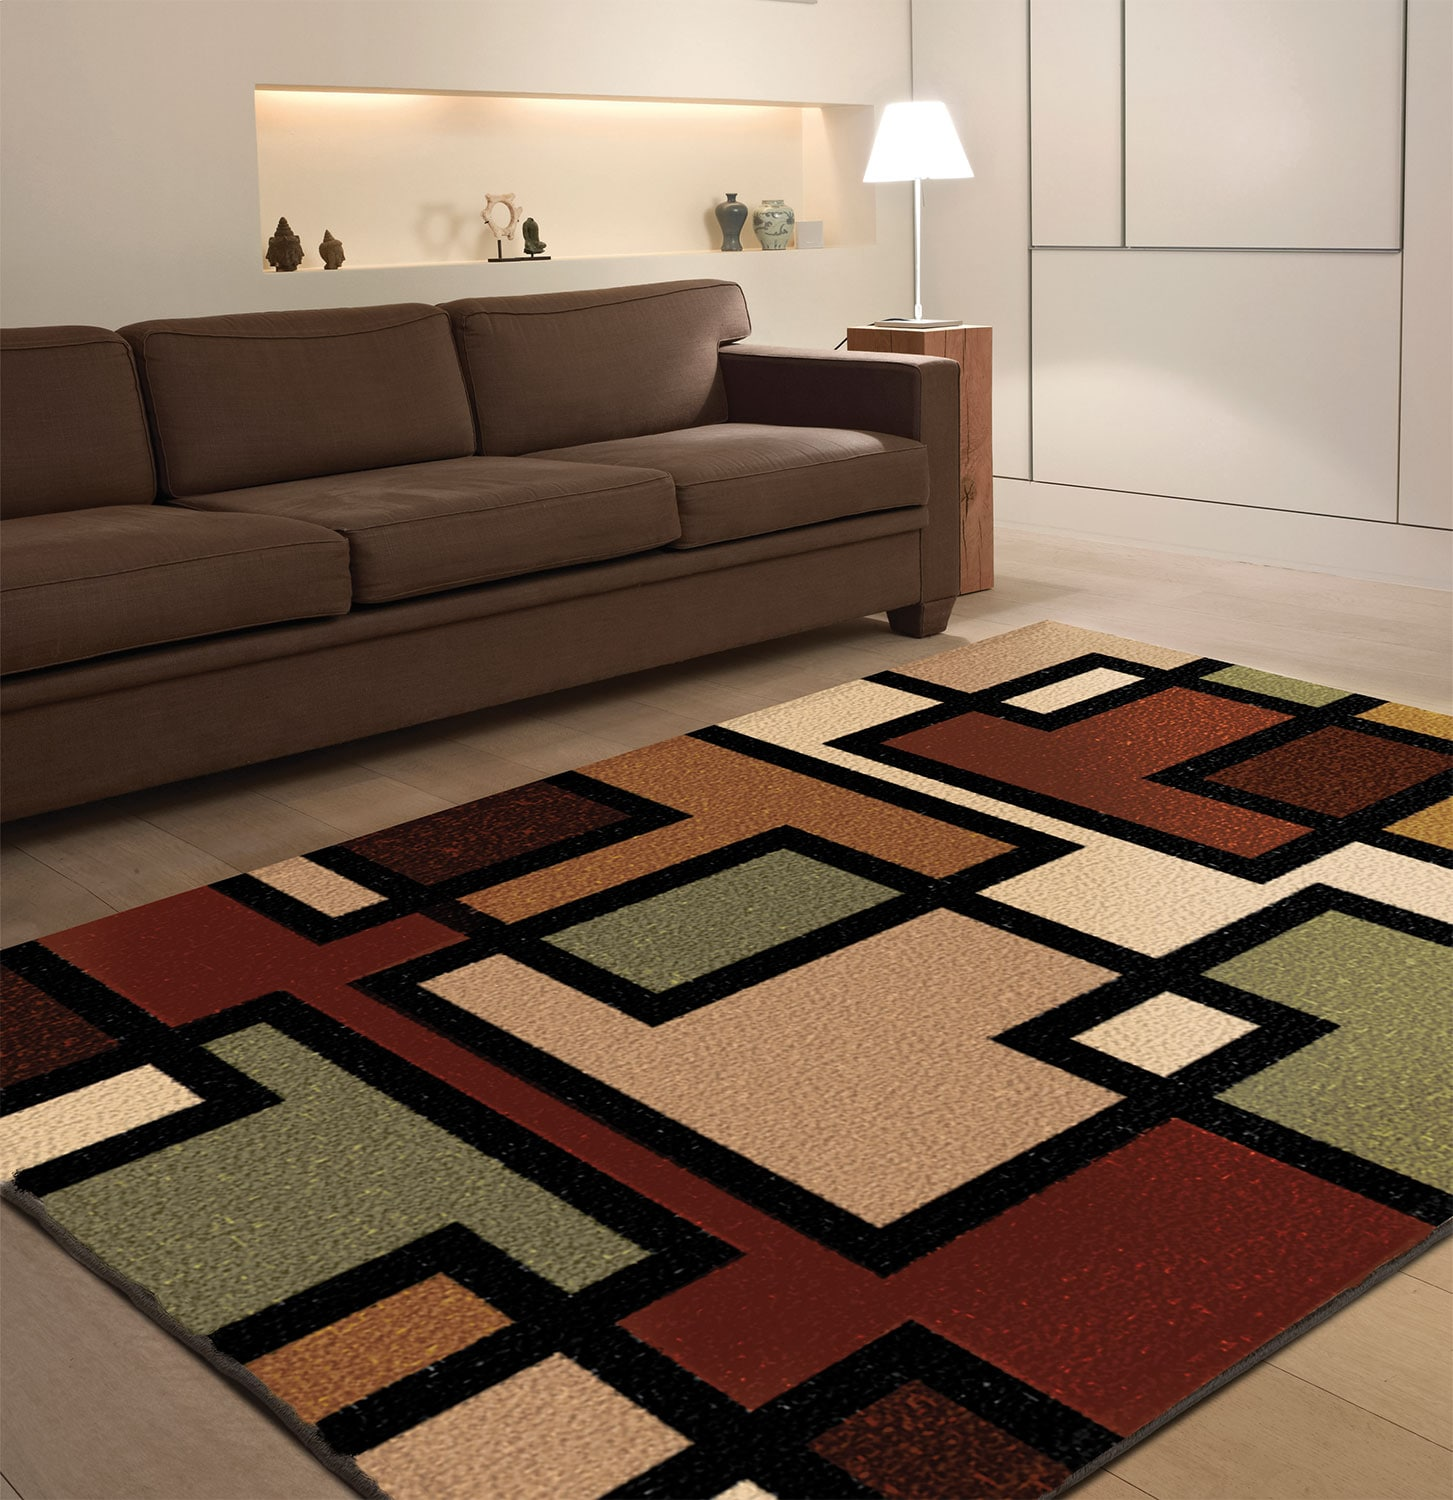 Rugs - Huffing Area Rug – 5' x 8'